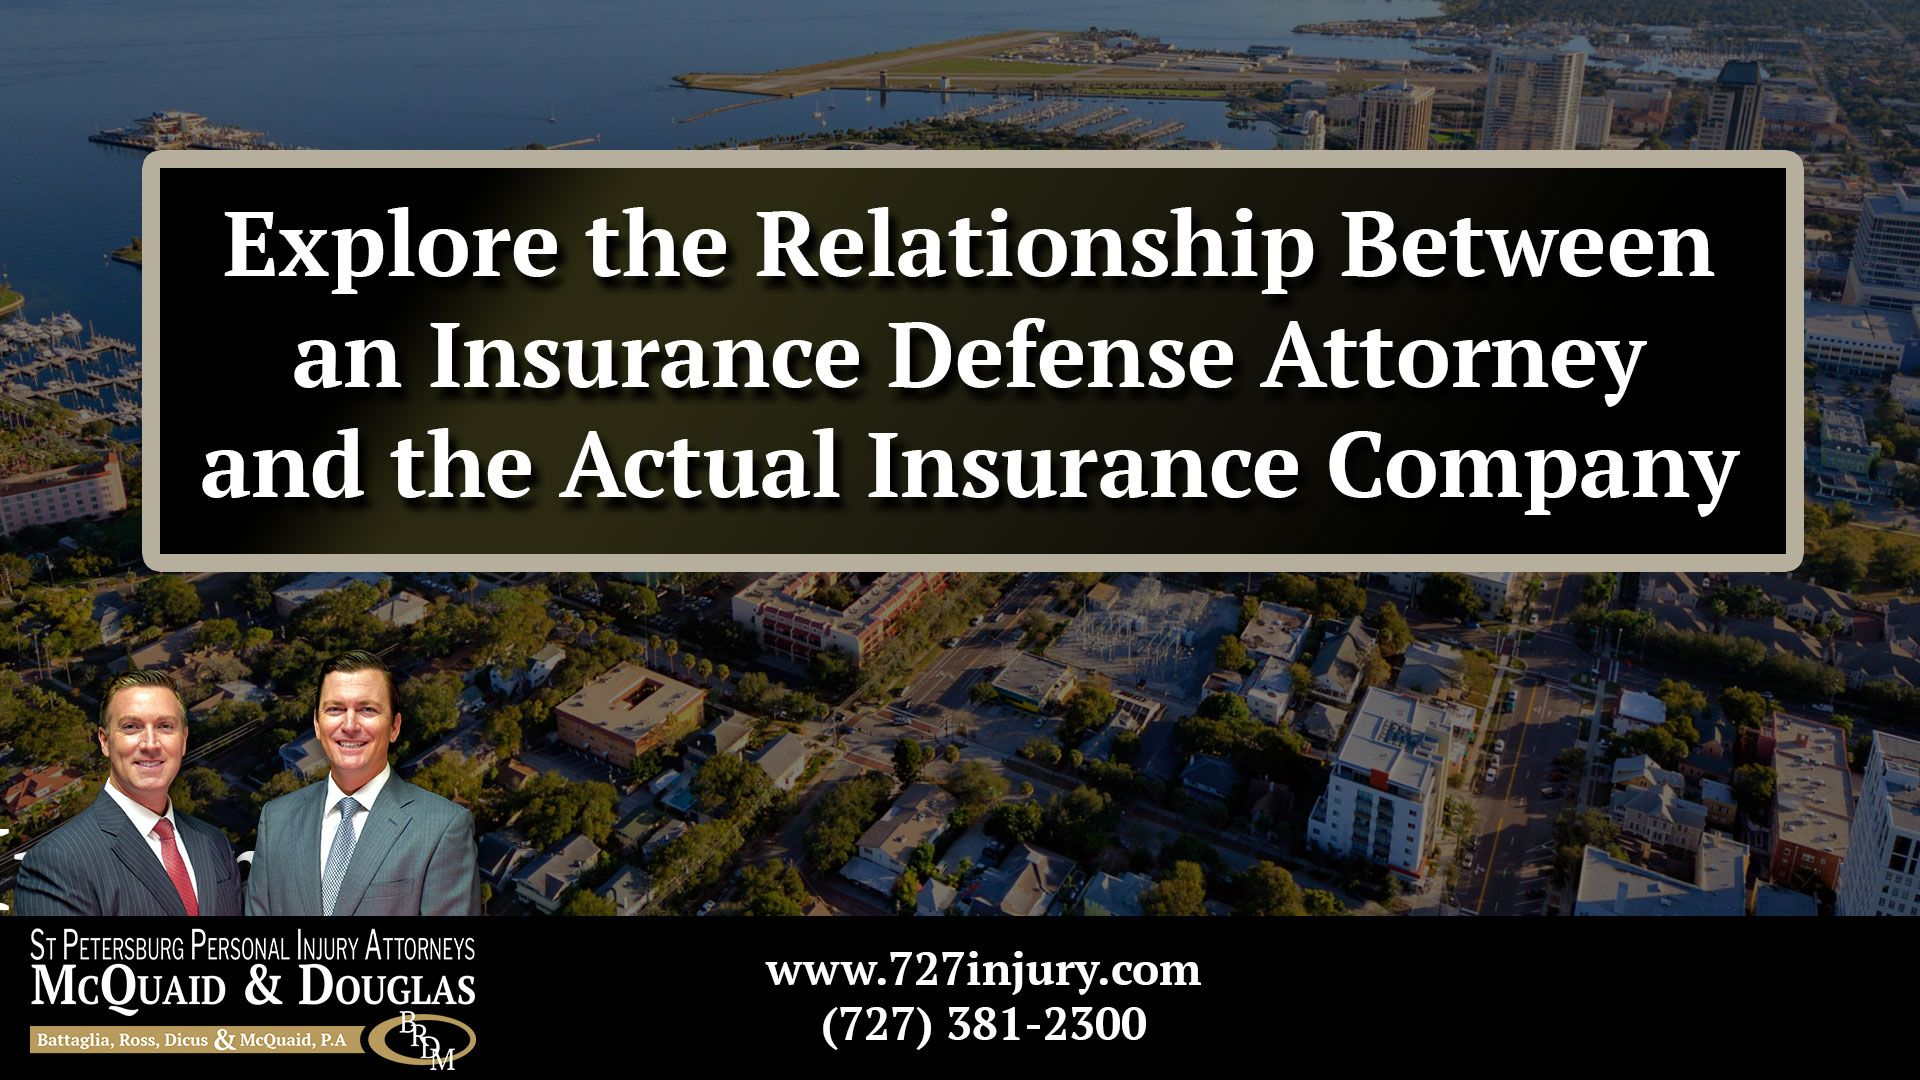 Insurance Defense Attorney And Insurance Company Relationship